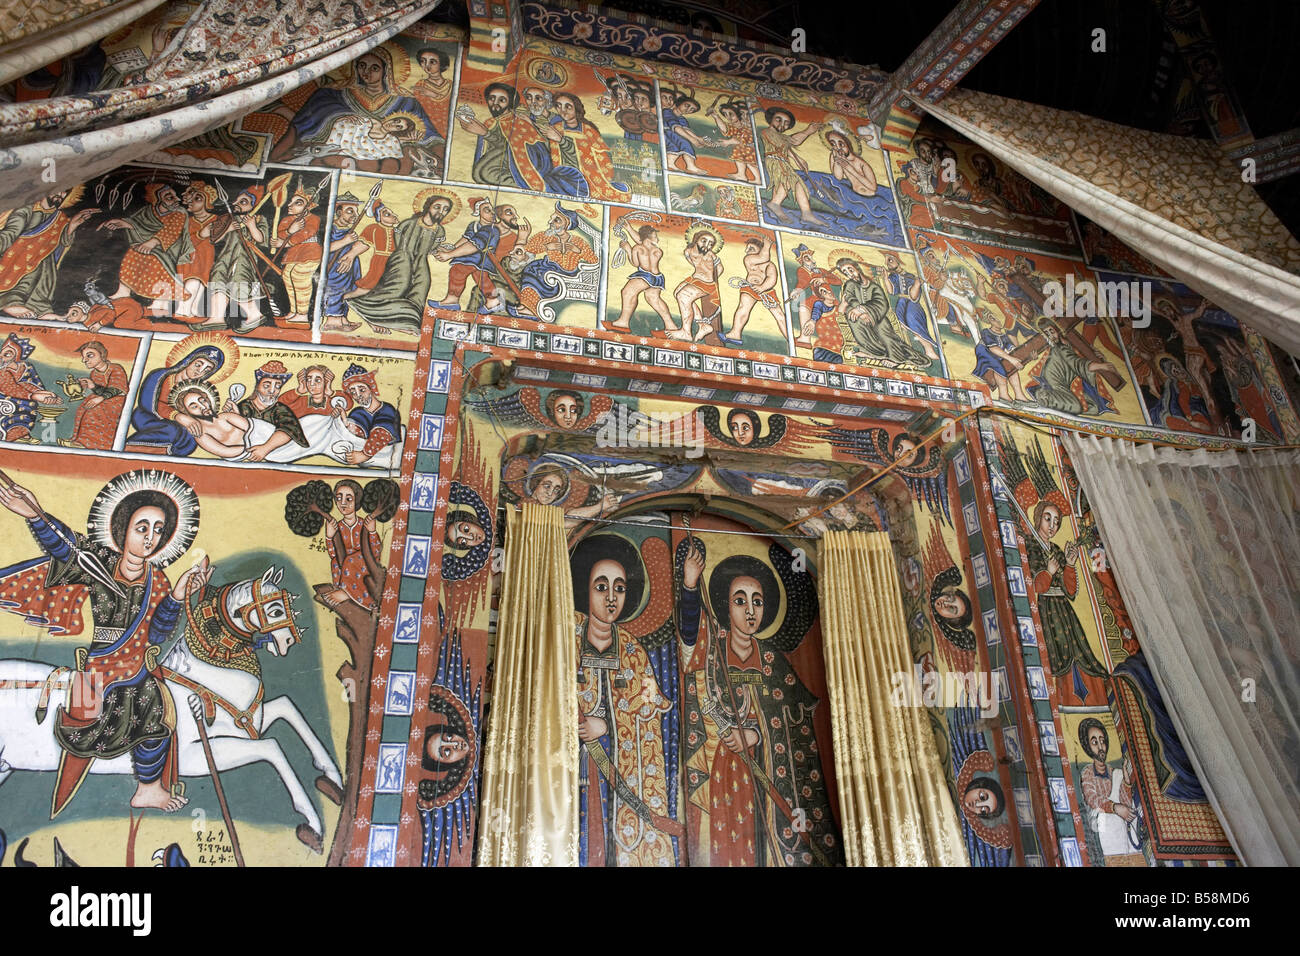 Paintings depict scenes from the Bible, on the inner sanctuary (maqdas) of the monastery of Ura Kidane Meret, Ethiopia - Stock Image